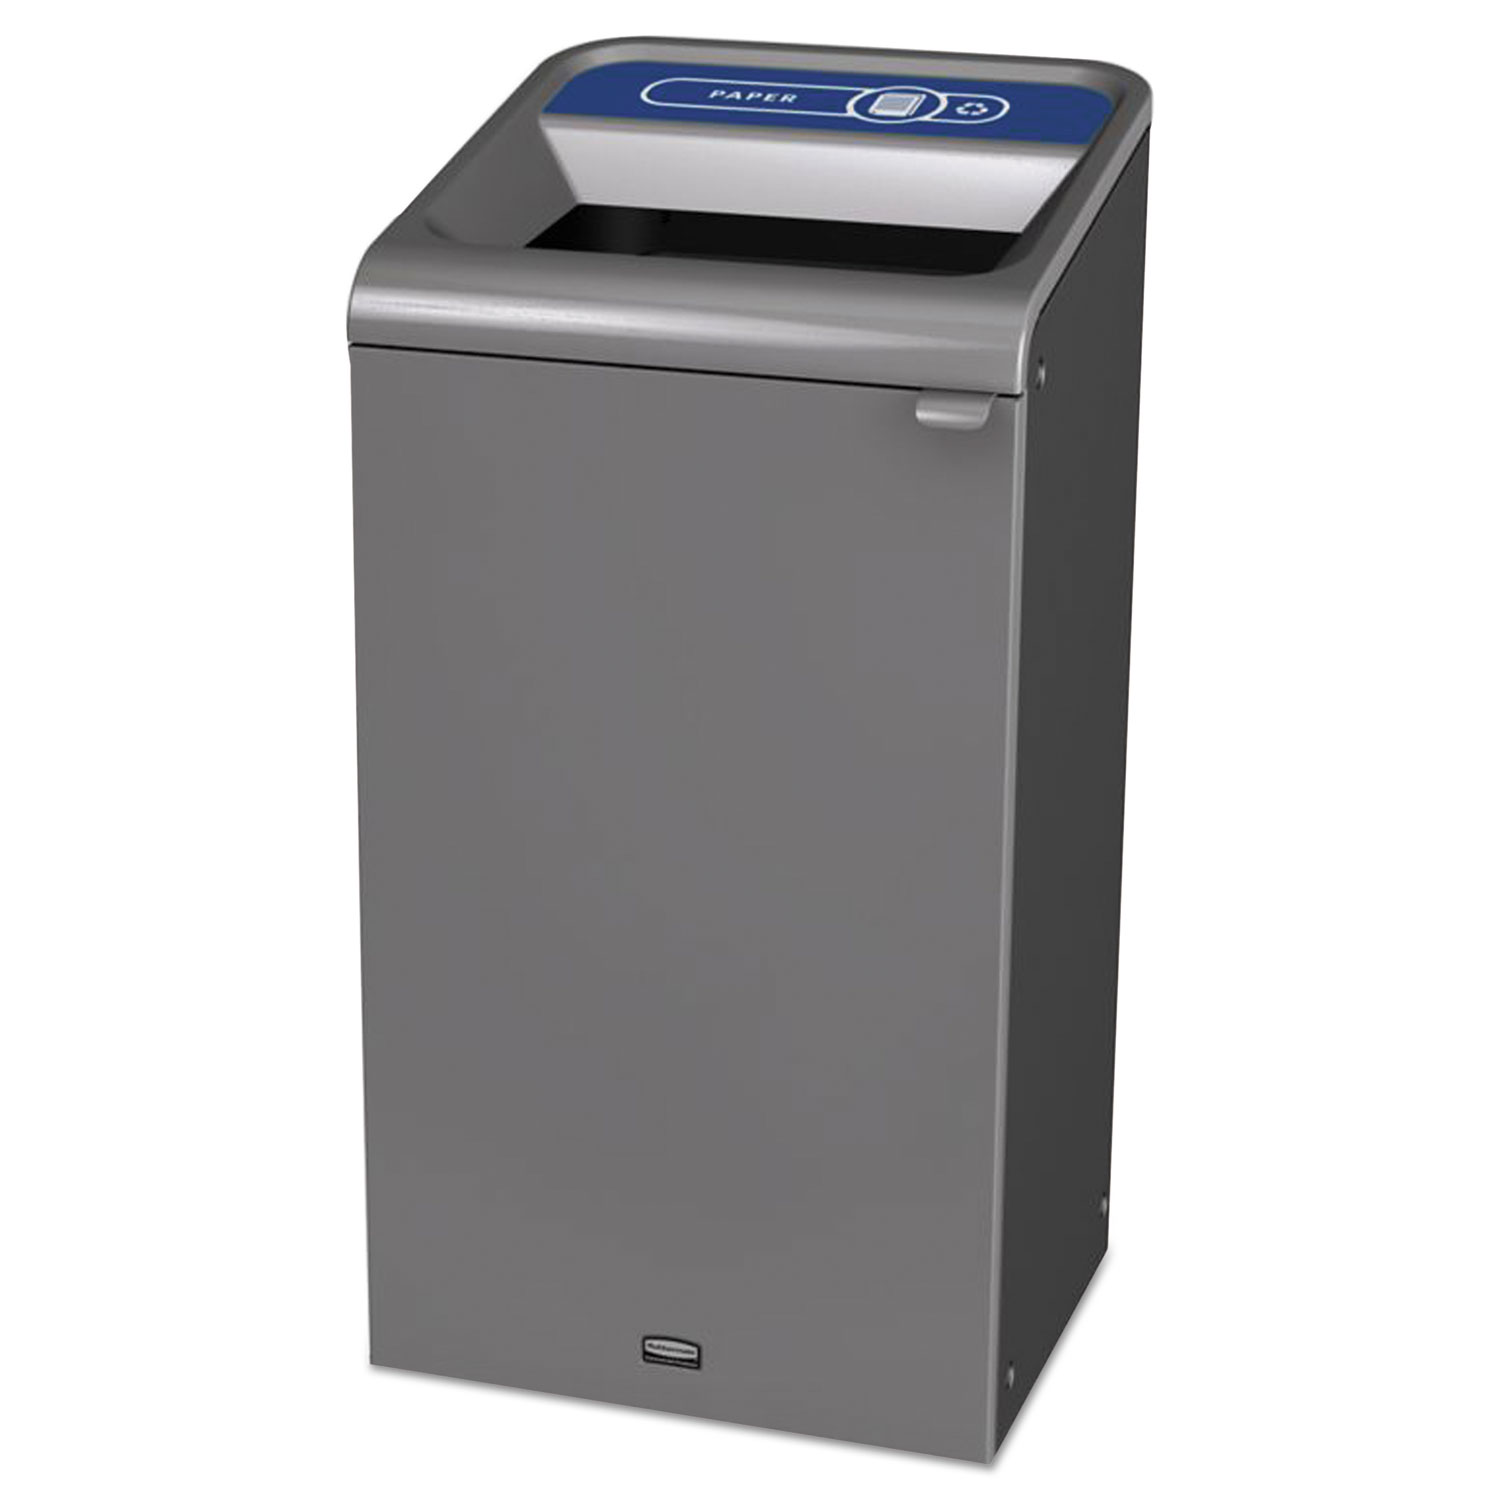 Configure Indoor Recycling Waste Receptacle, 23 gal, Gray, Paper